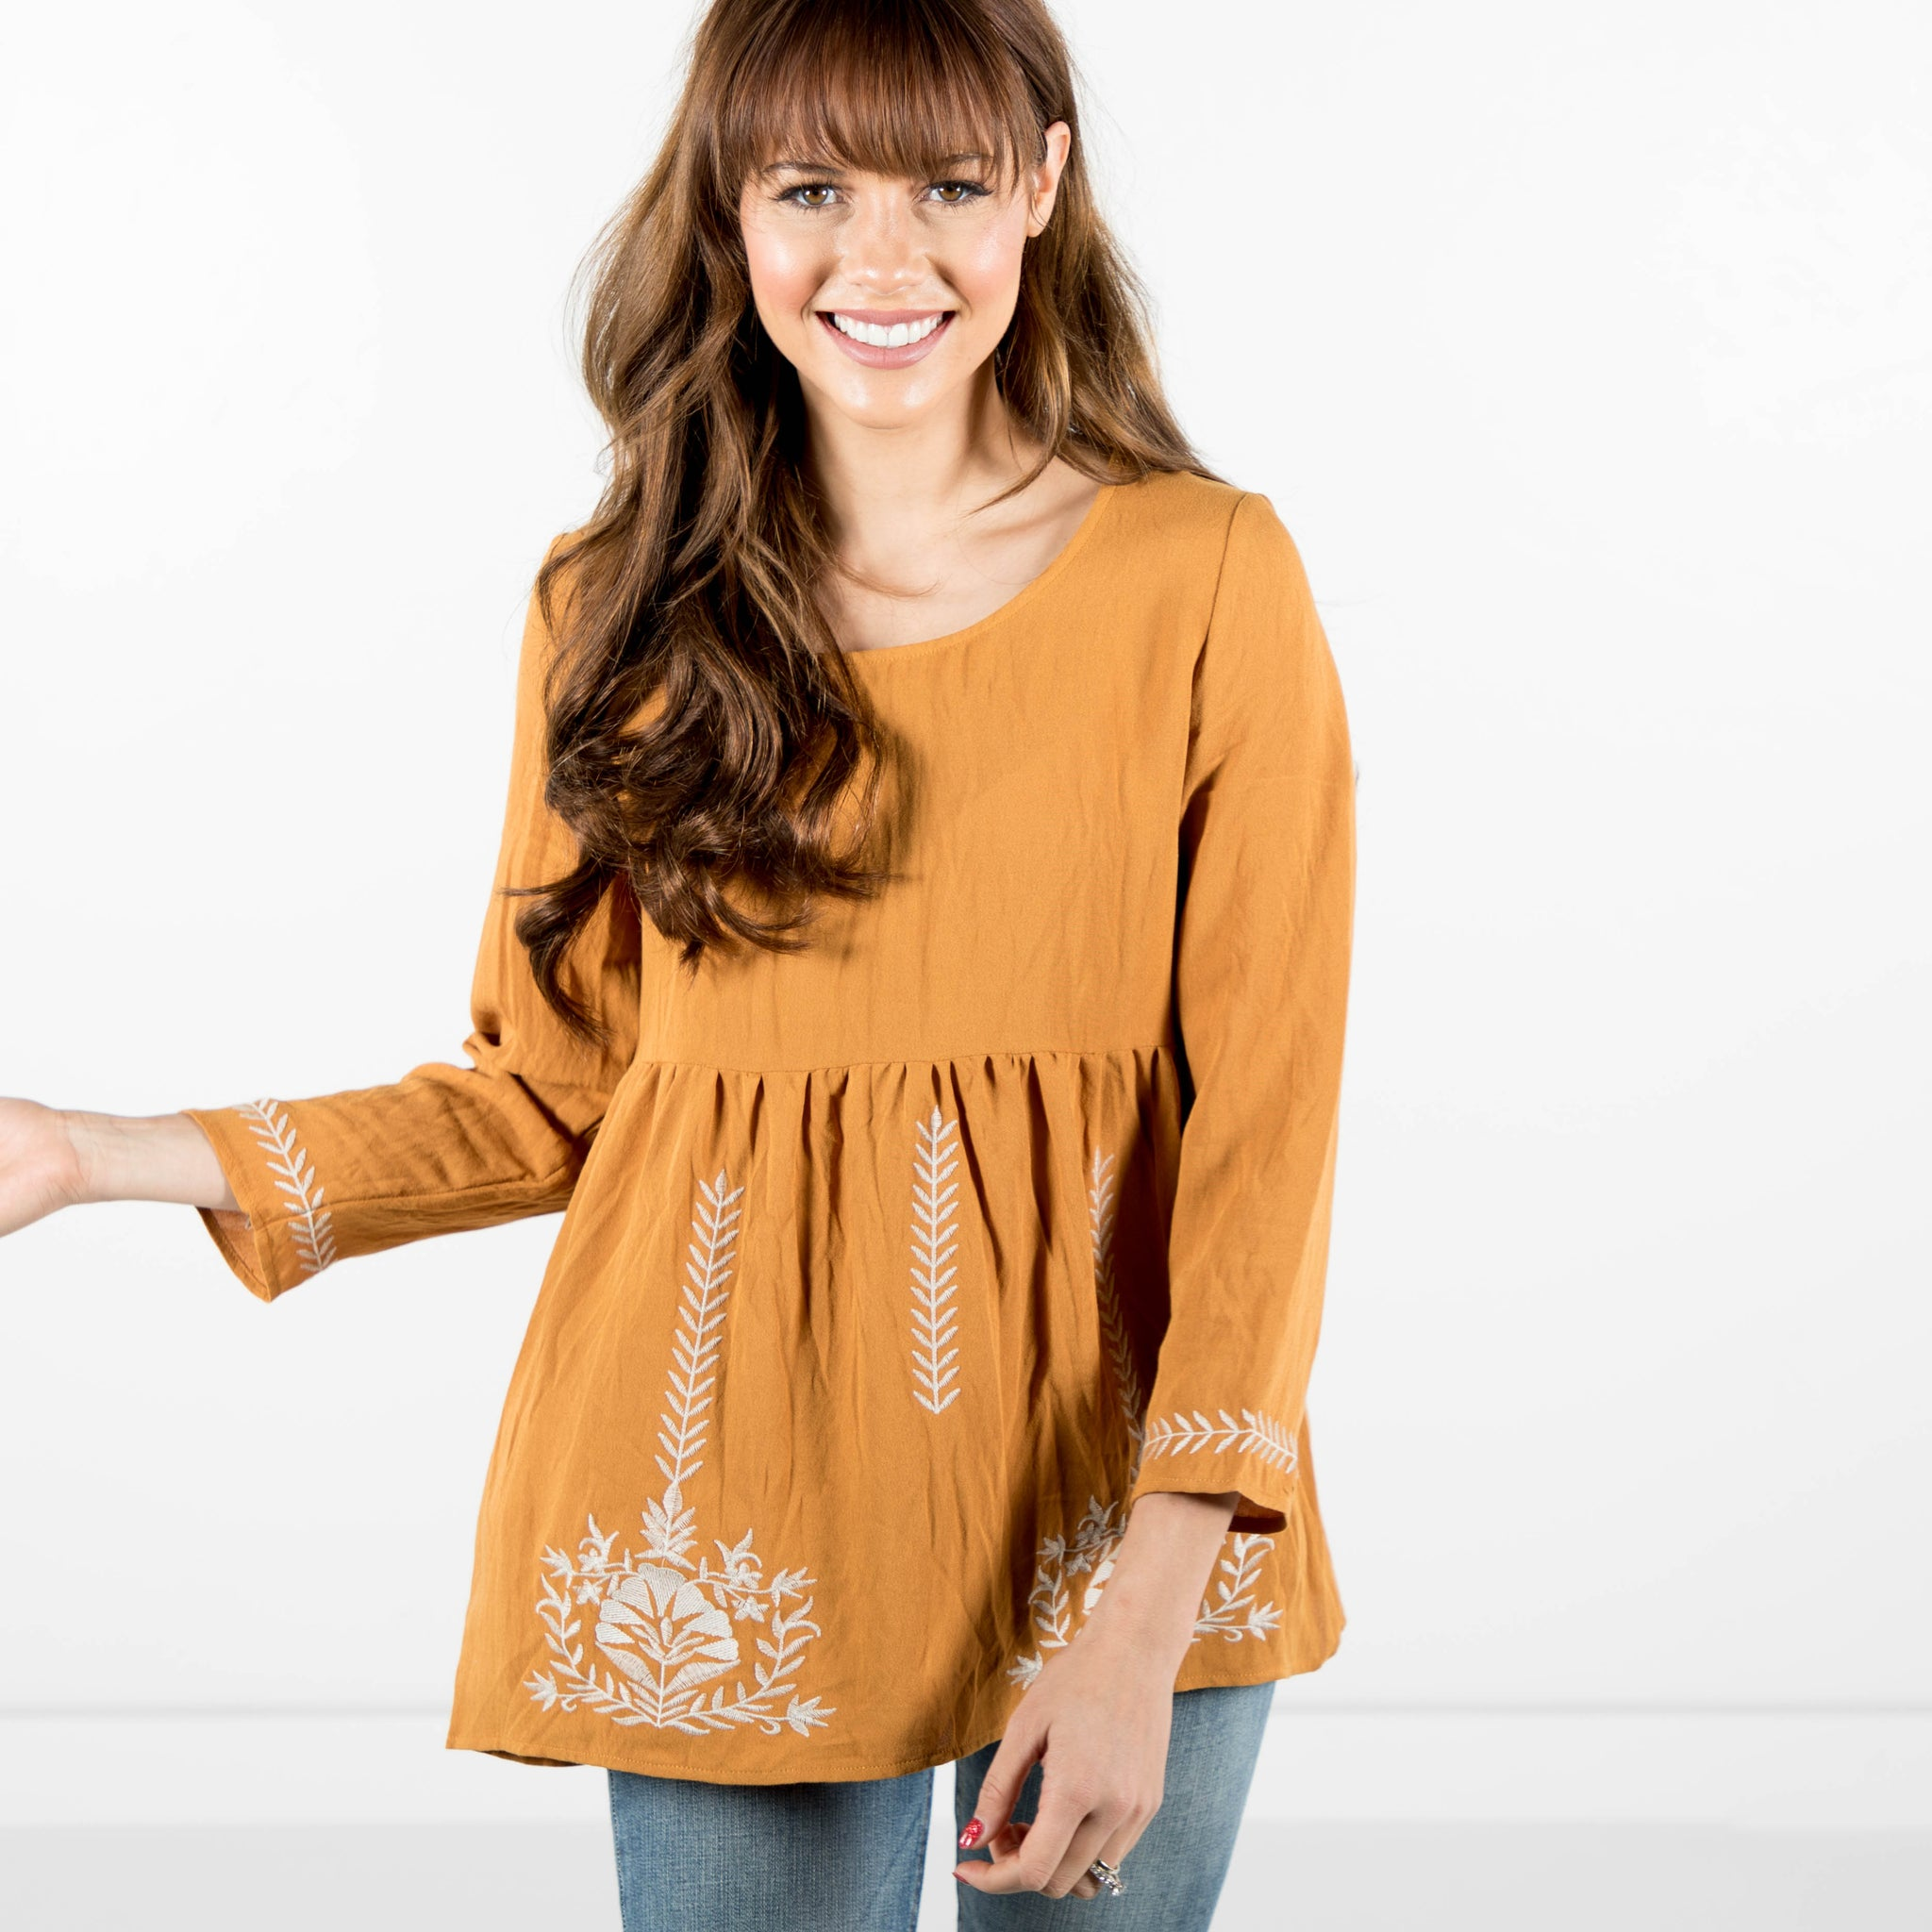 Knox Long Sleeve Top